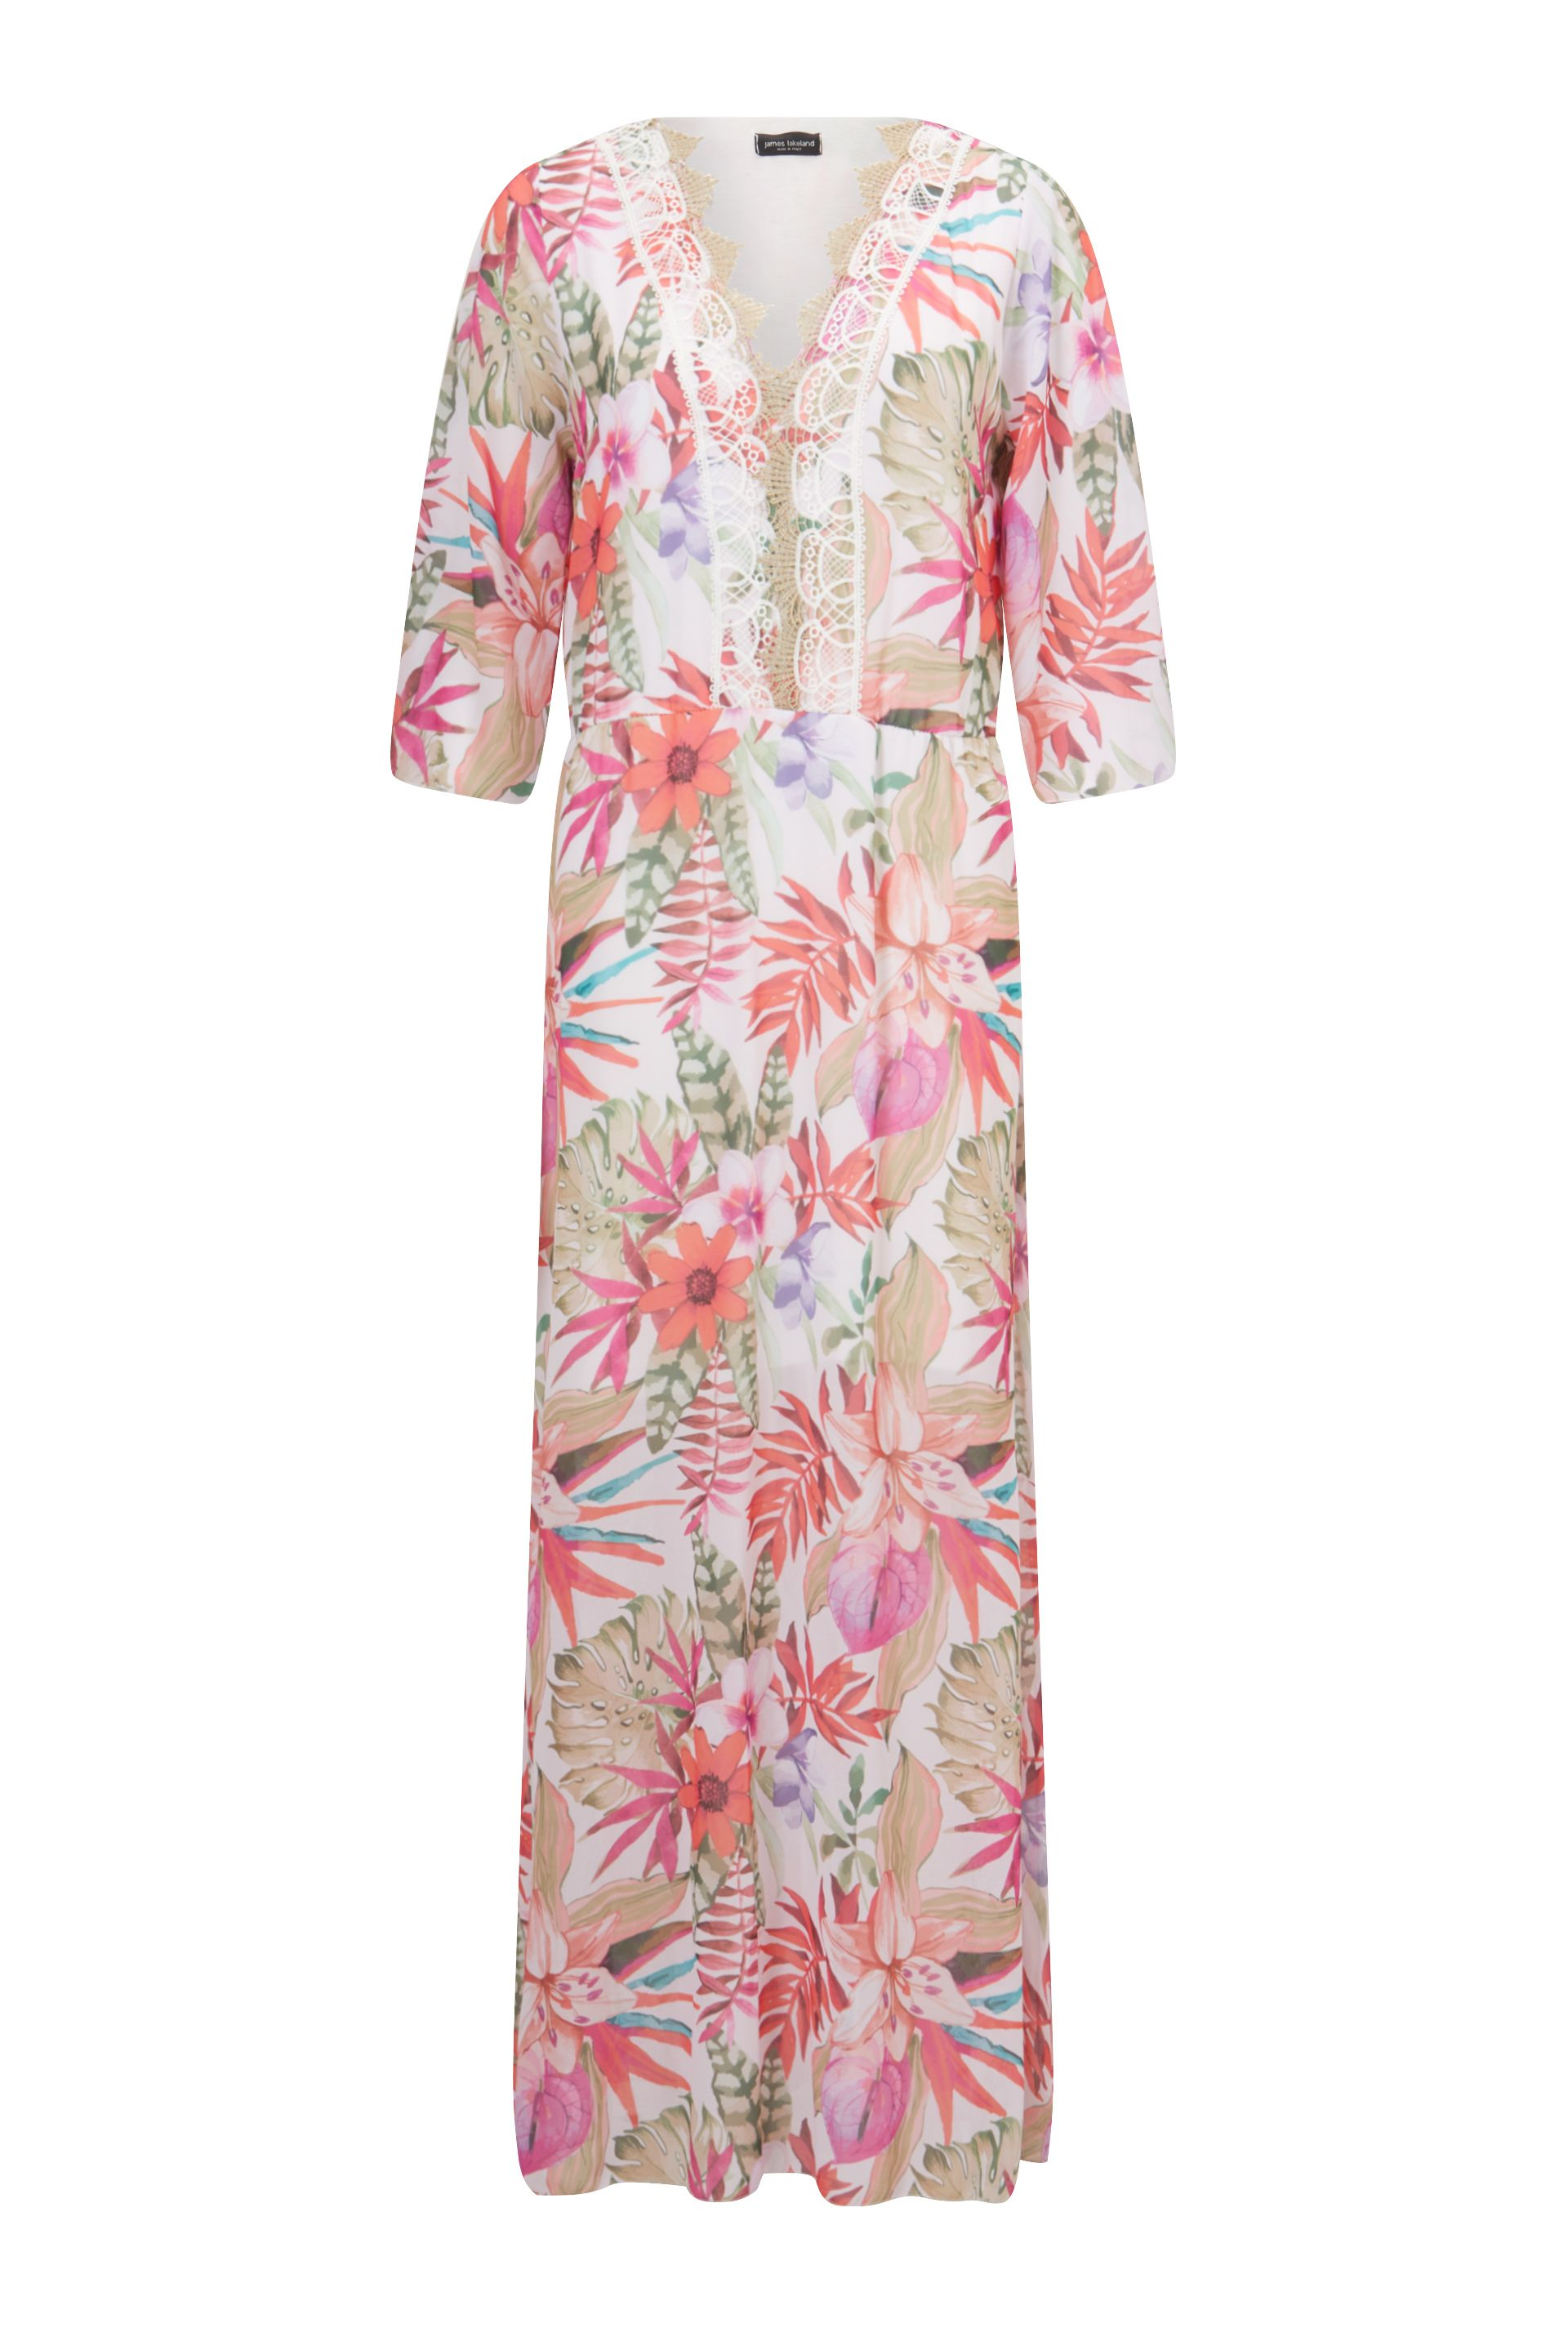 James Lakeland Floral Print Maxi Dress, Cream